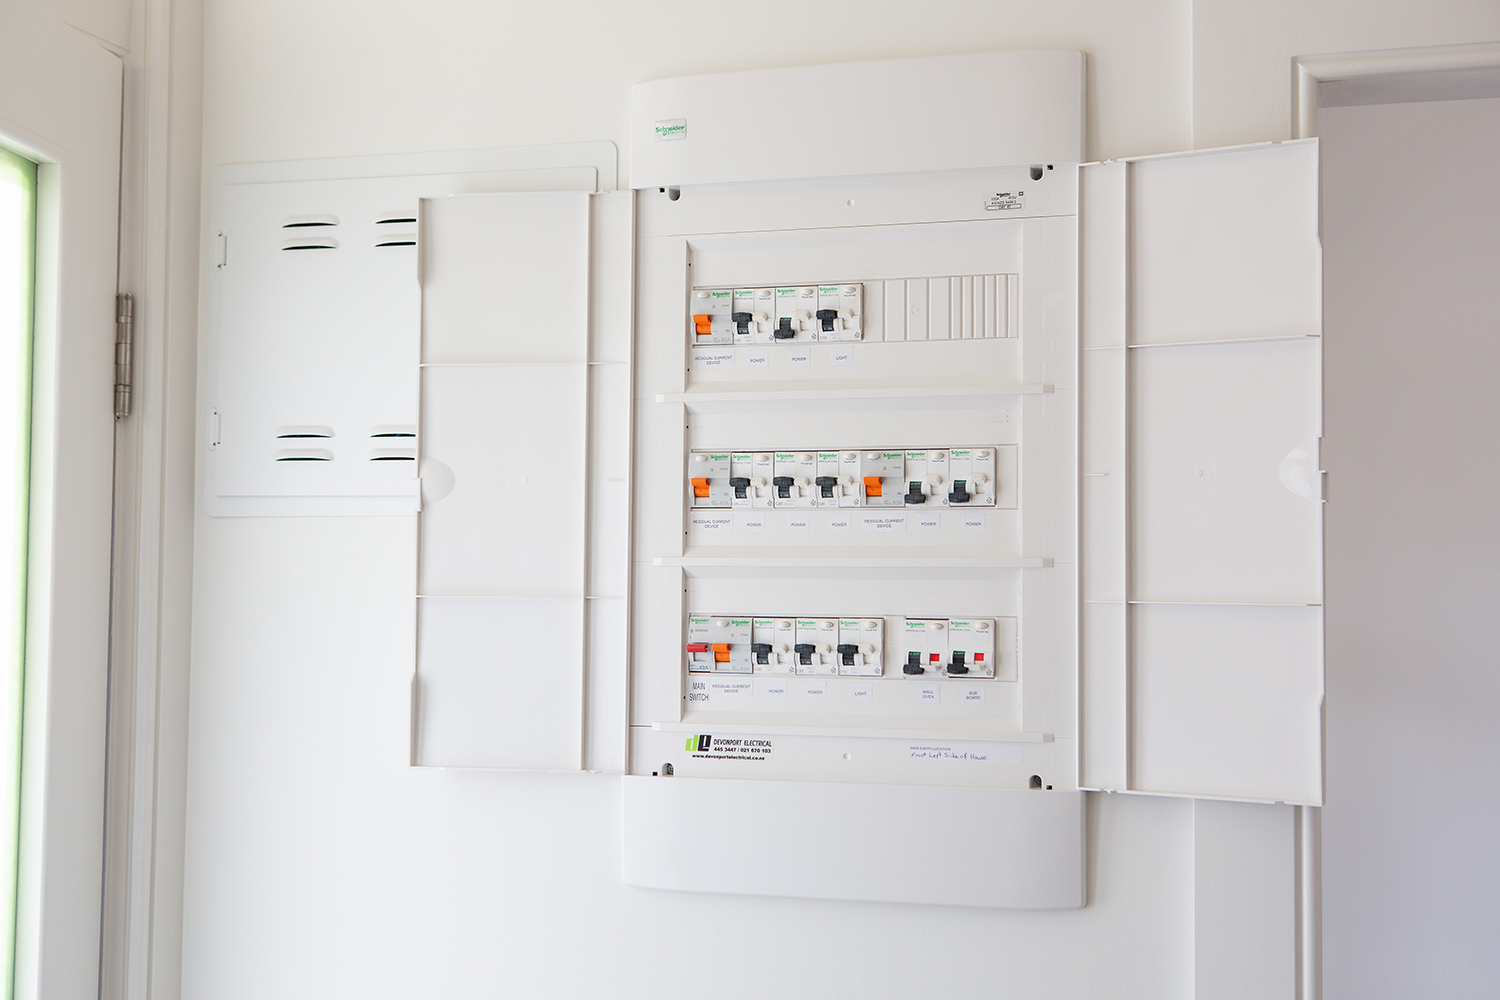 pdl by schneider switchboard